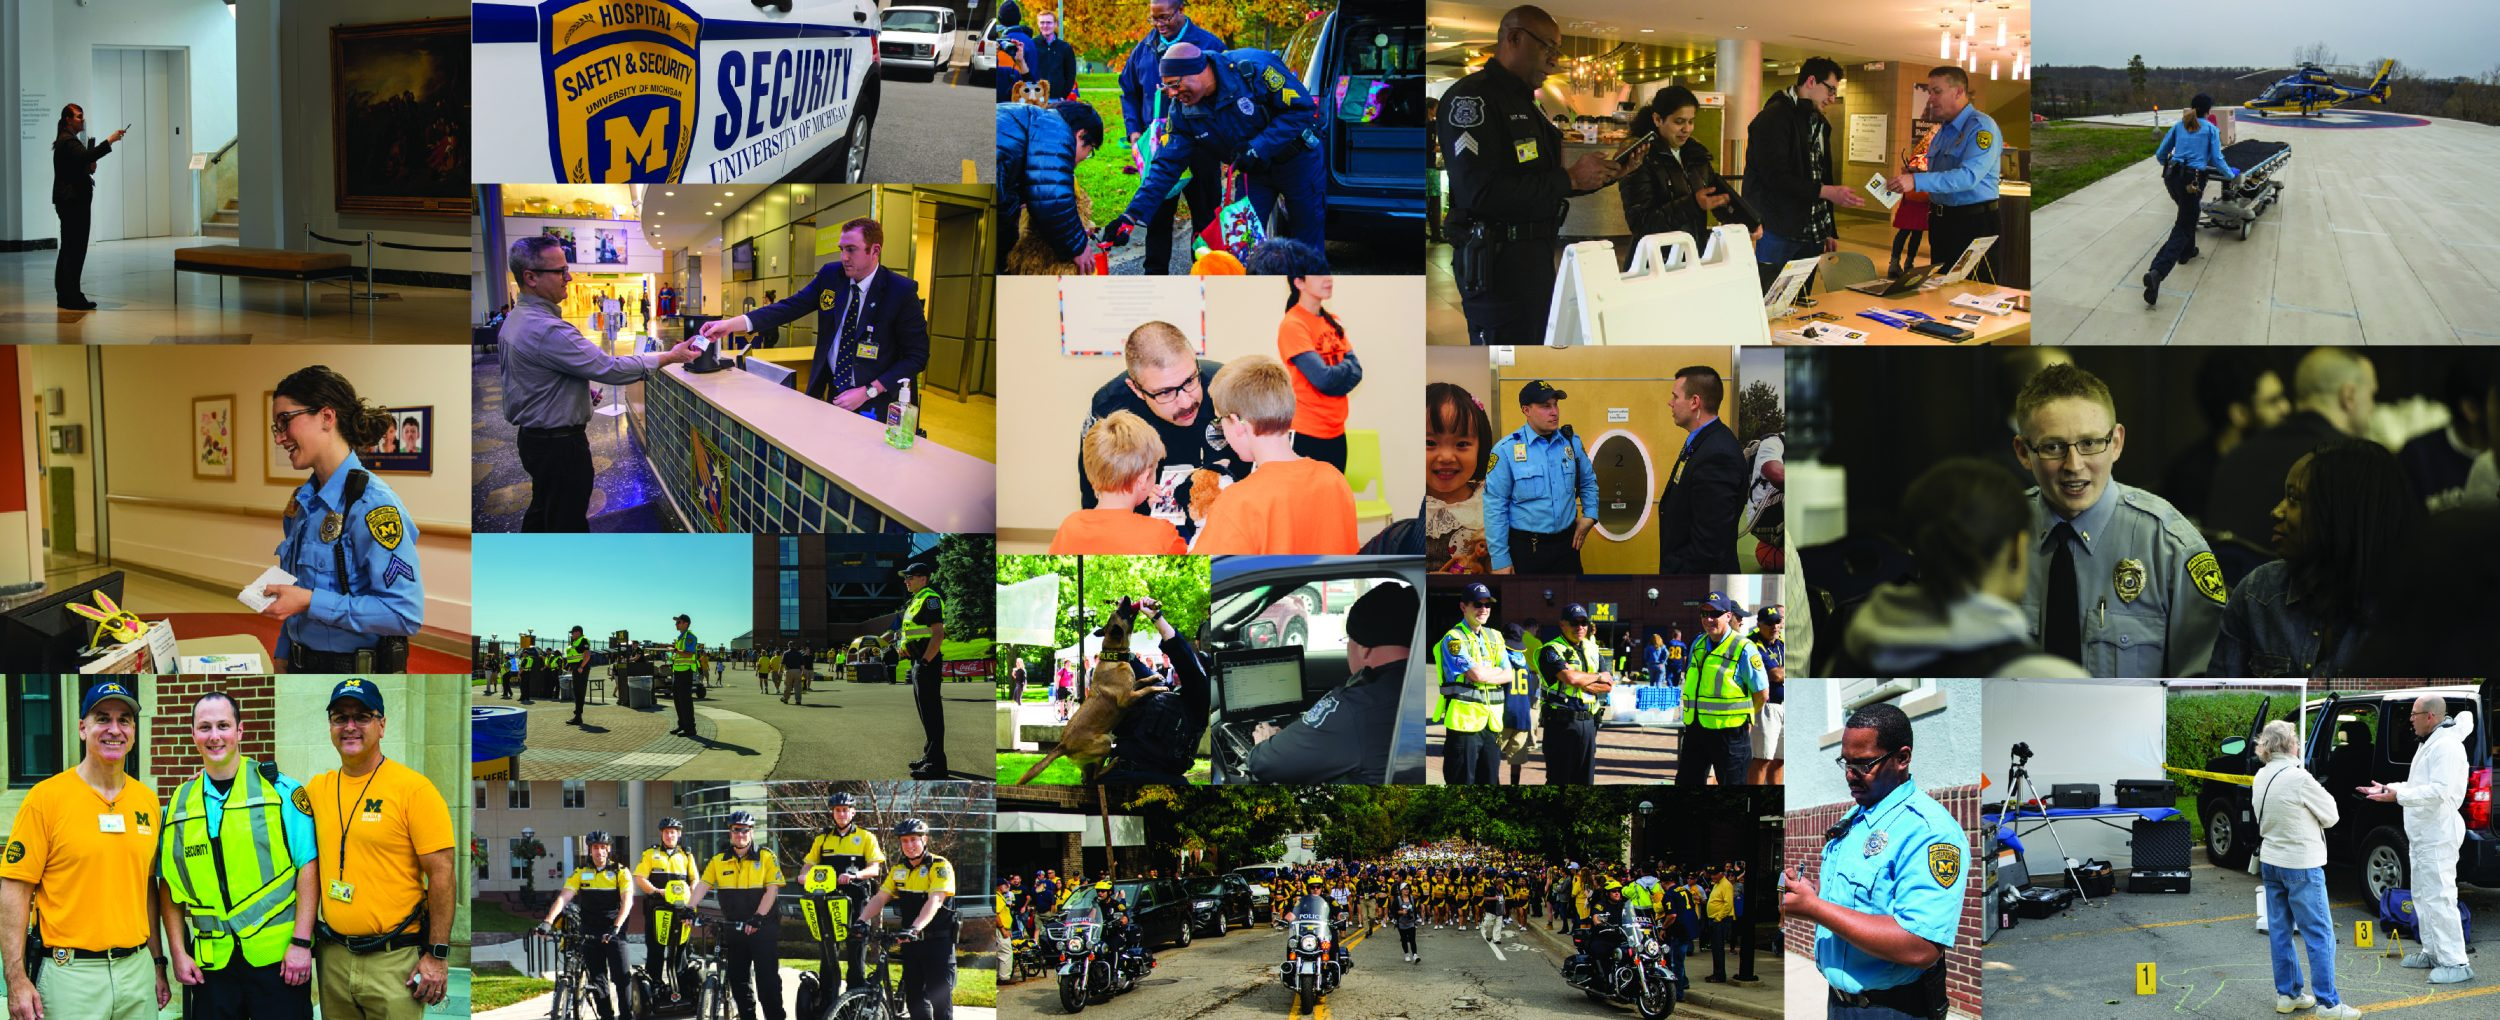 Officer Interactions Collage